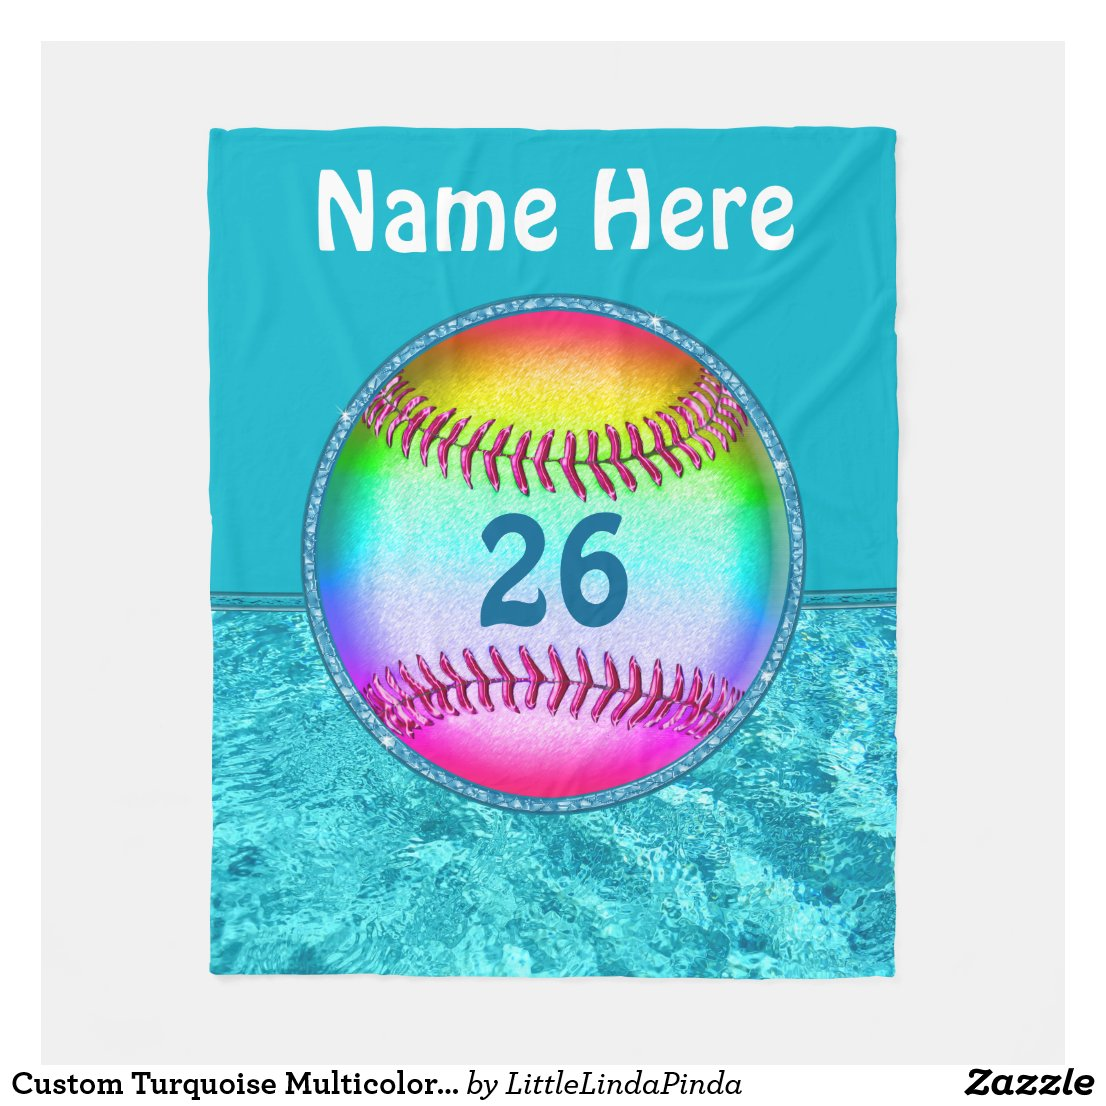 Custom Turquoise Multicolored Softball Blanket